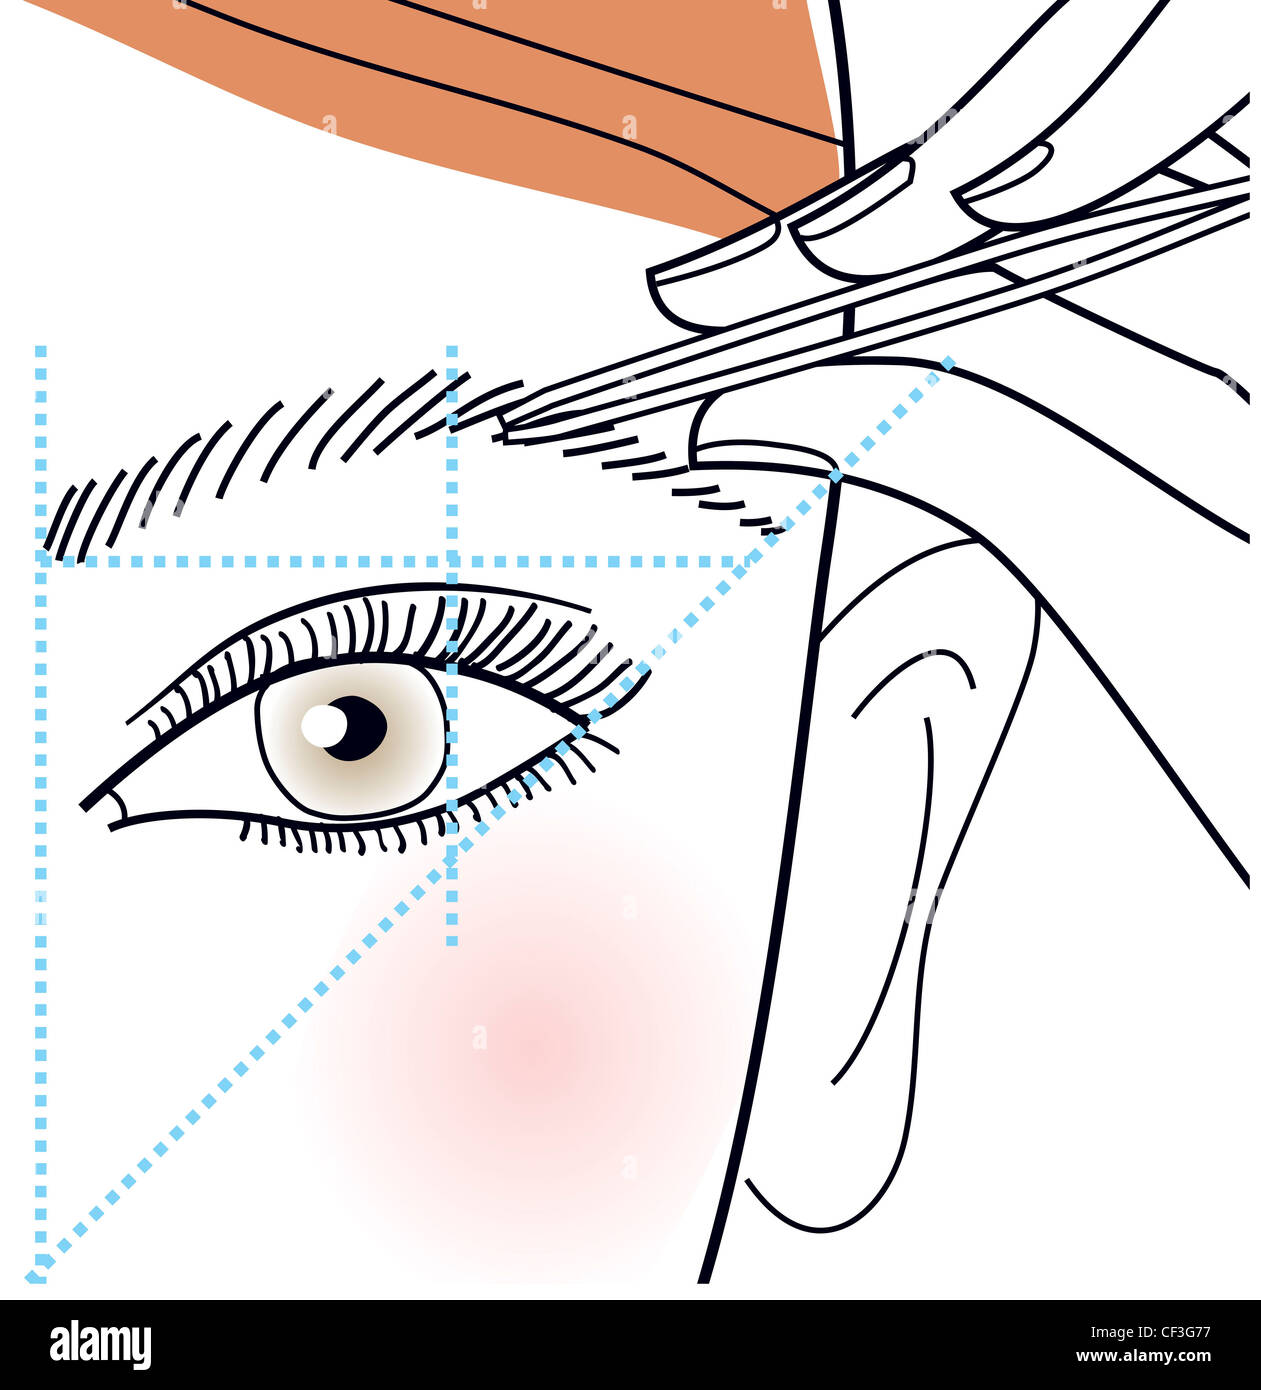 Step by Step How to shape your brows Step Shaping eyebrows with tweezers - Stock Image